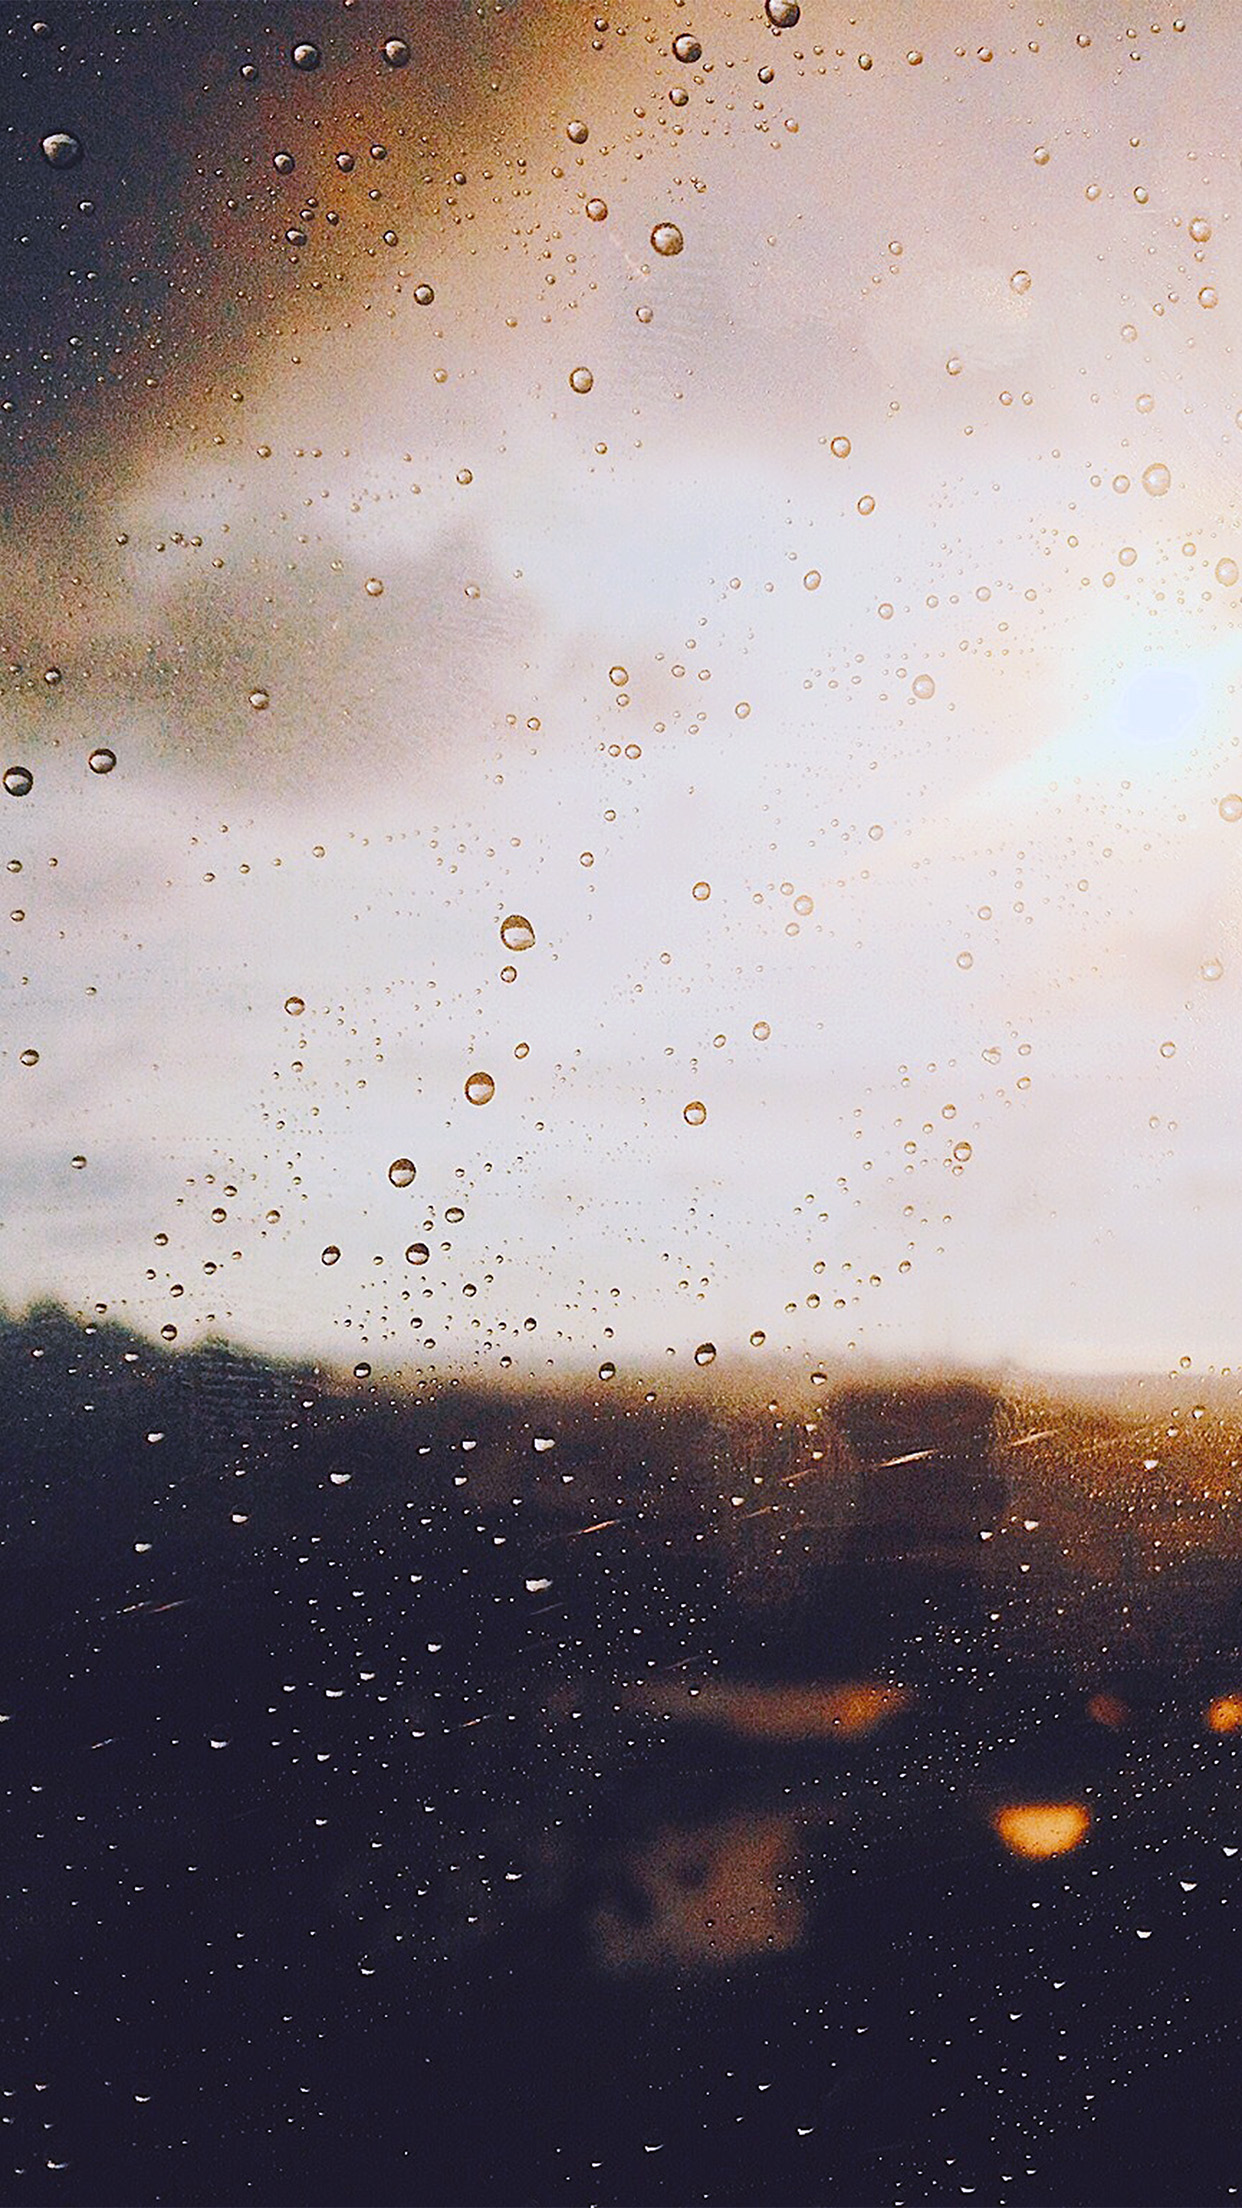 Nj57 Rain Window Day Sunlight Bokeh Blue Wallpaper